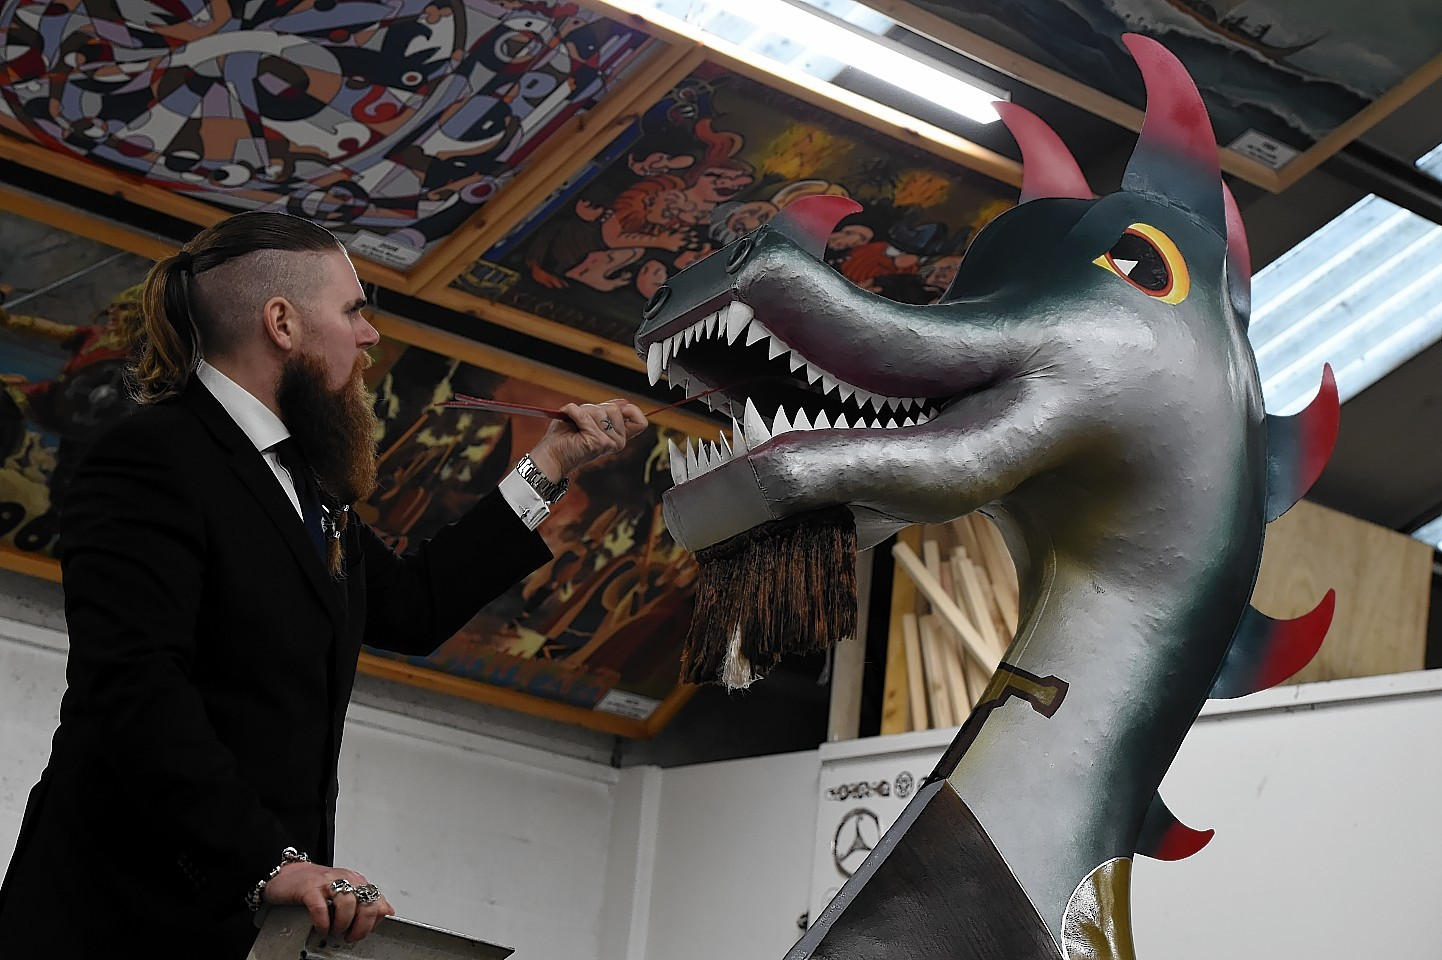 Brydon Wright installing the tongue. Pictures and video by Kenny Elrick